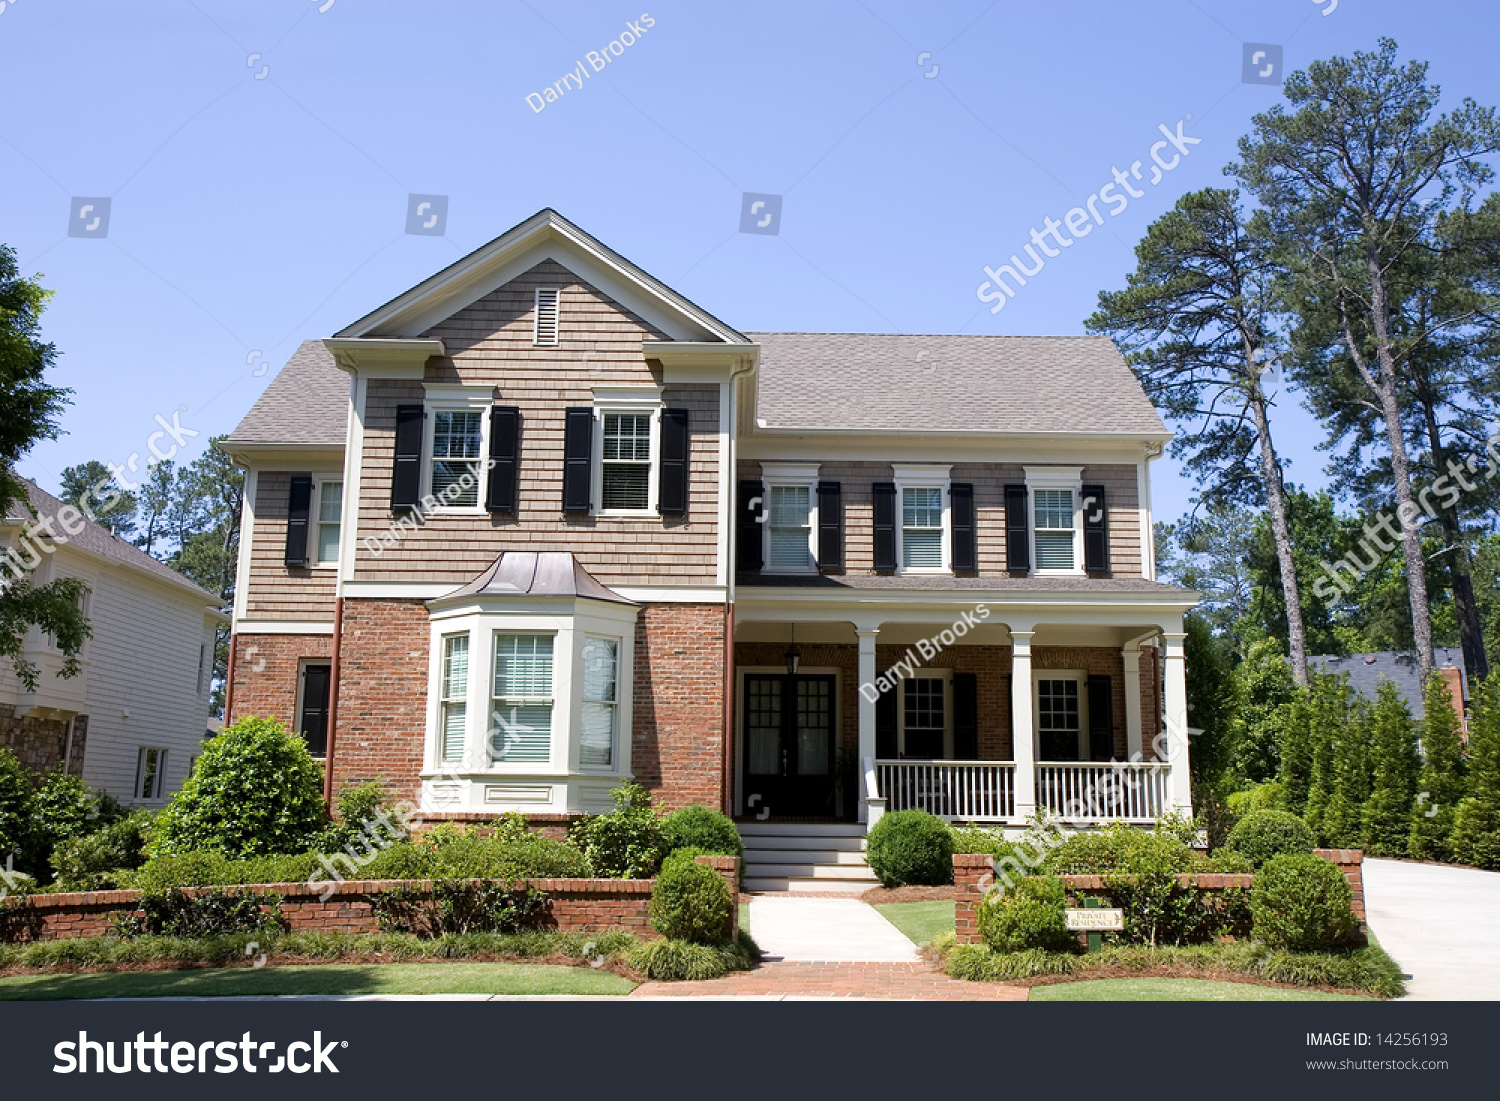 A Nice Traditional House Of Brick And Wood